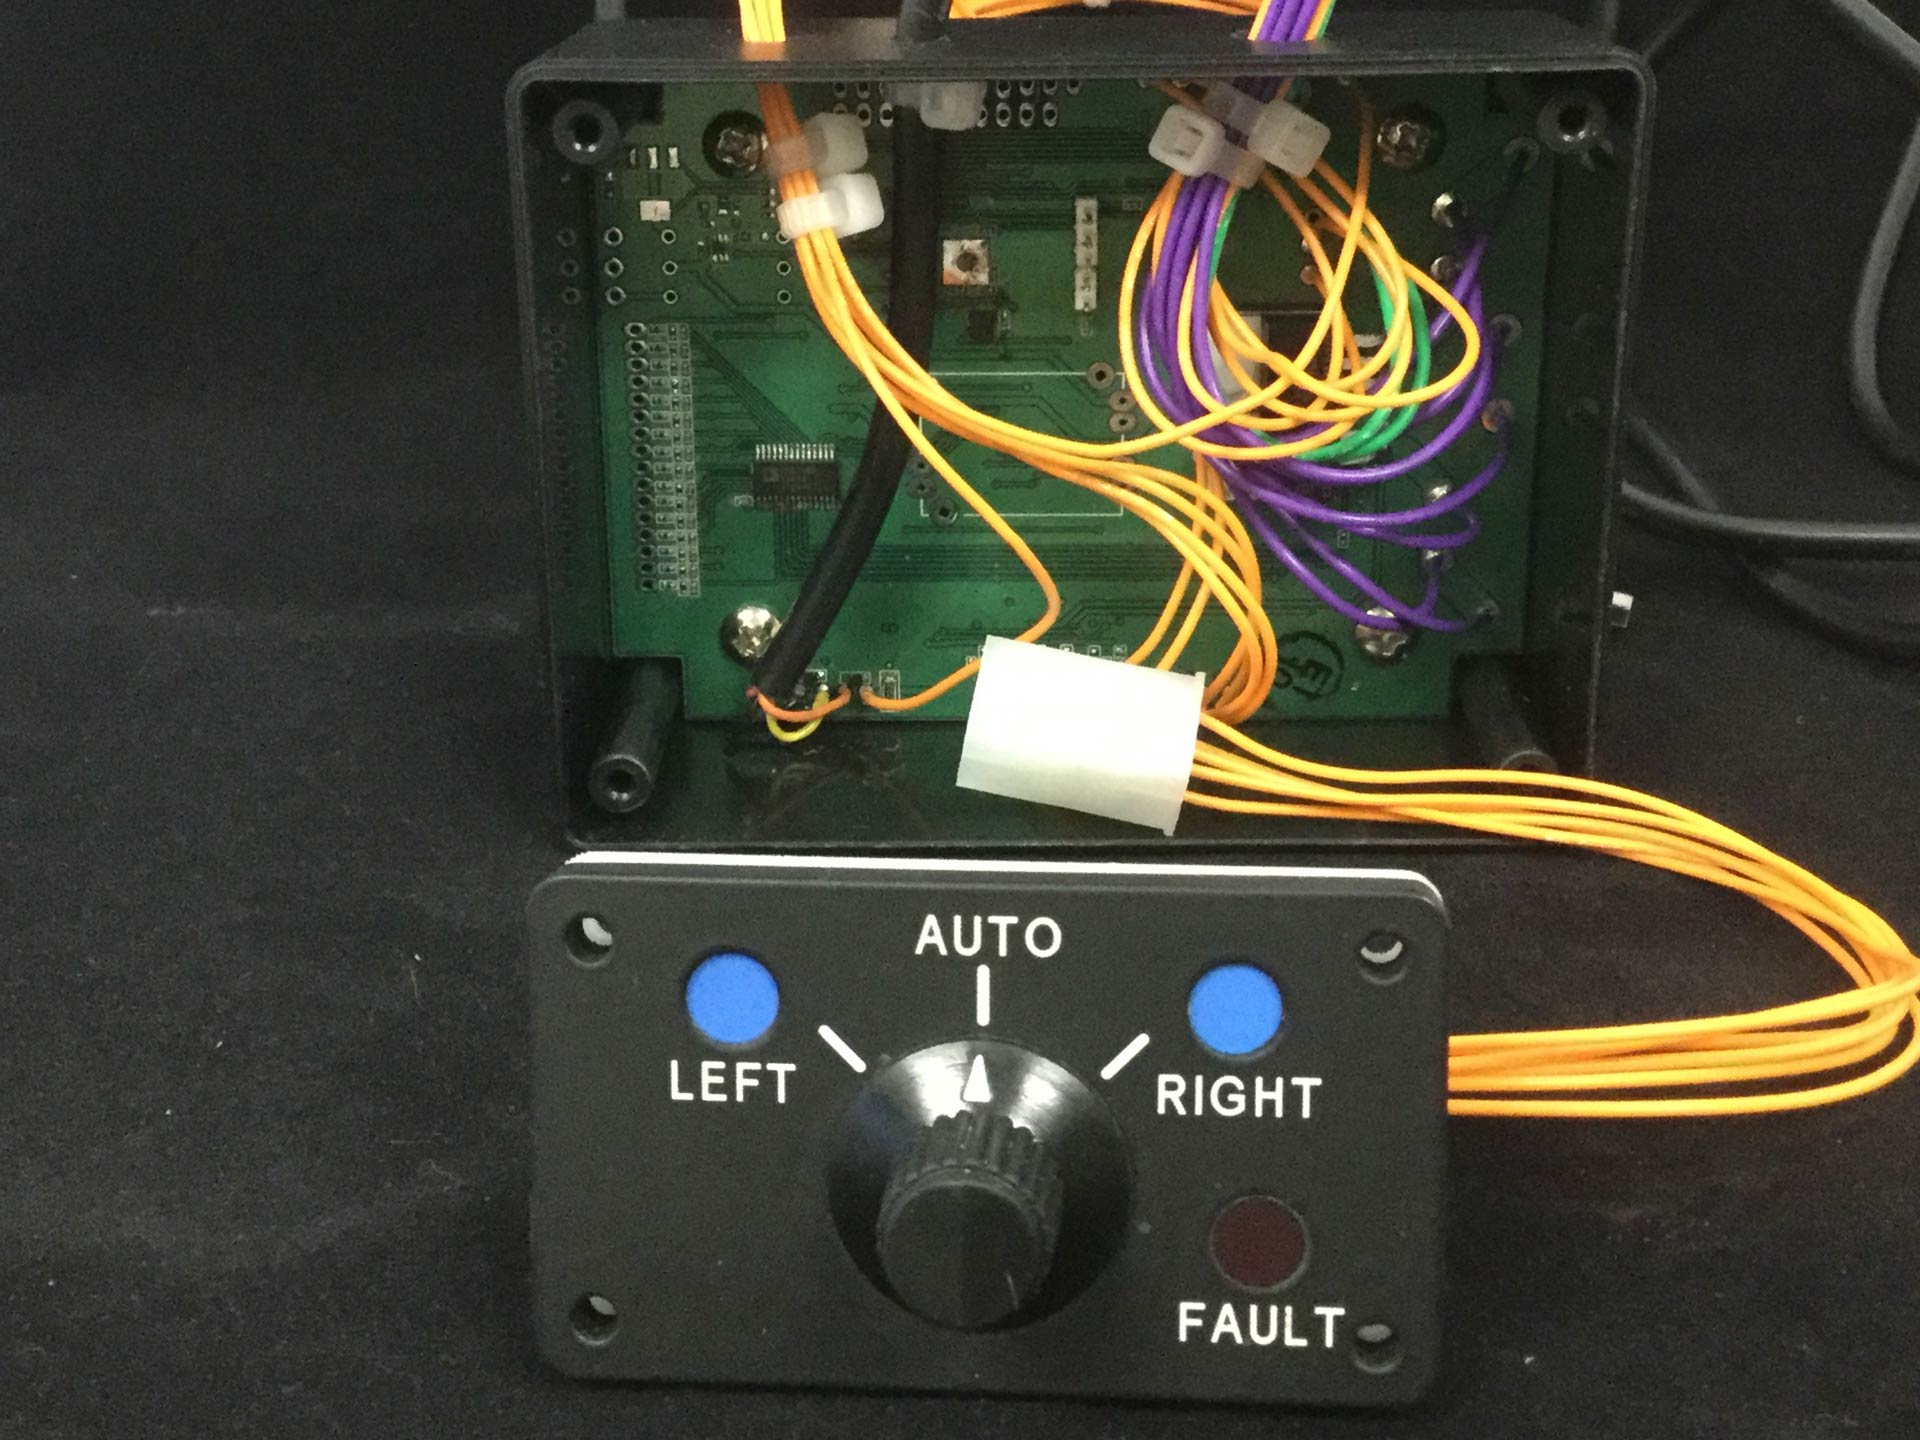 fuel tank controller system component